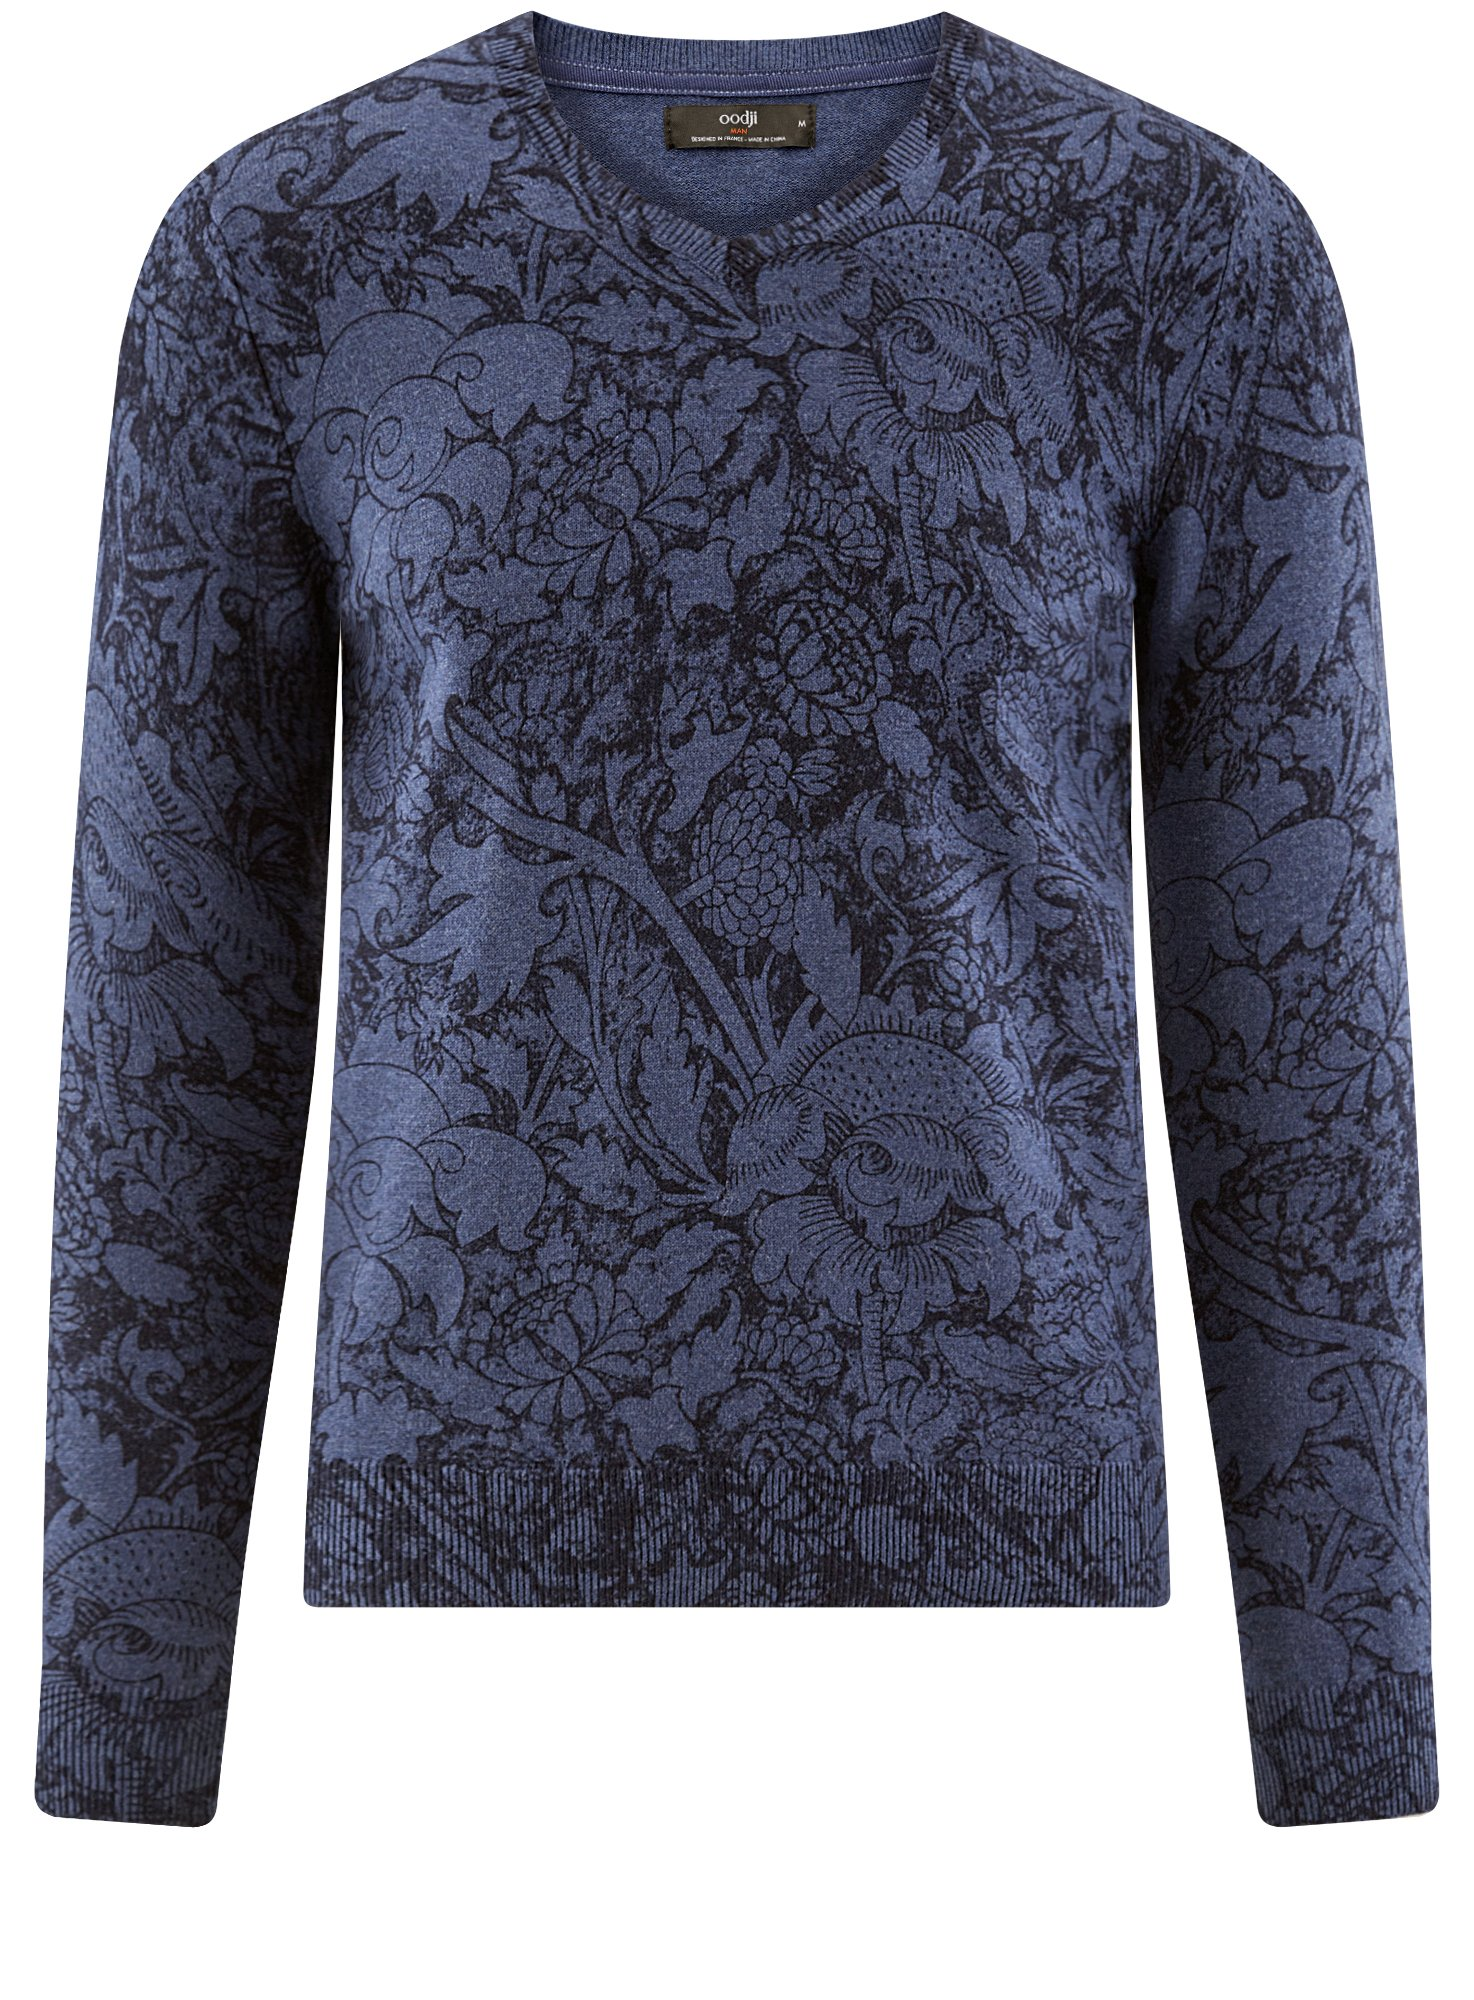 oodji Ultra Men's Printed Cotton Pullover, Blue, US 36-38/EU 46-48/S